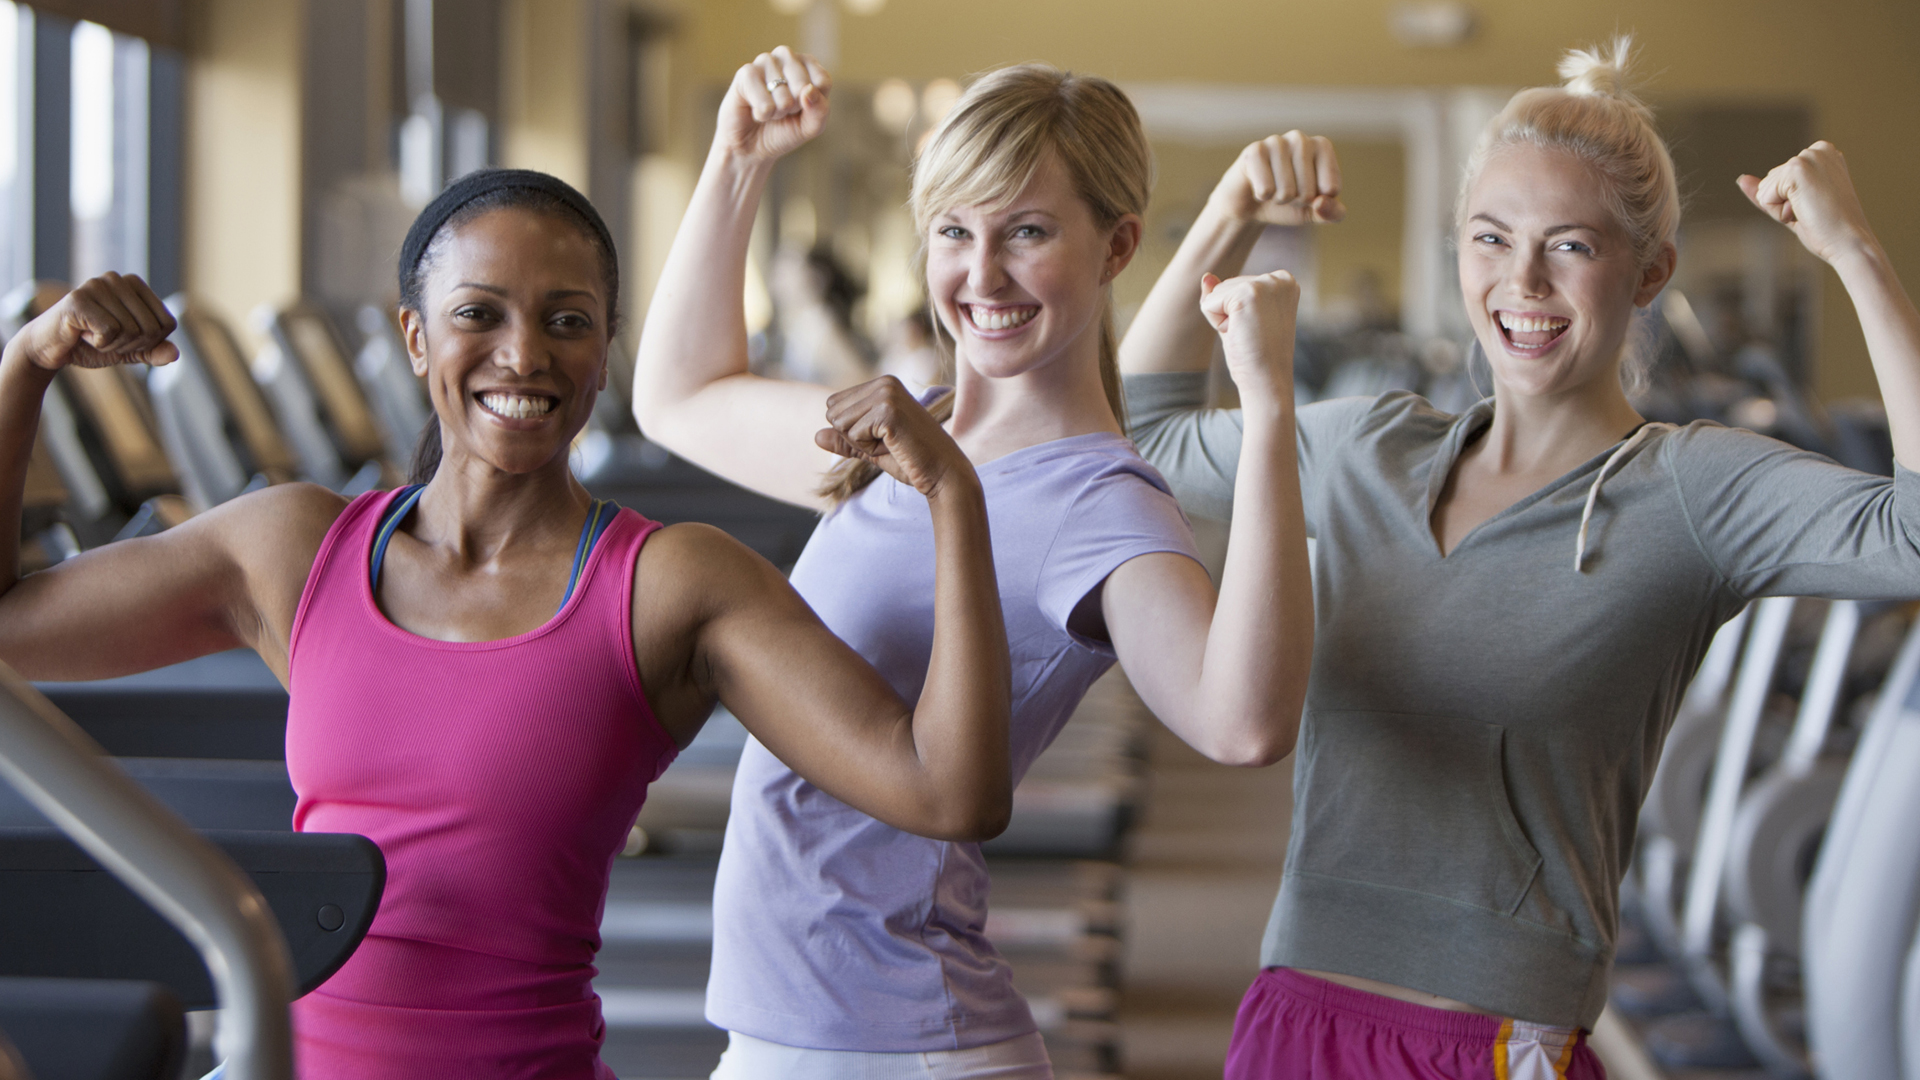 Women flexing arms at gym | Sheknows.ca